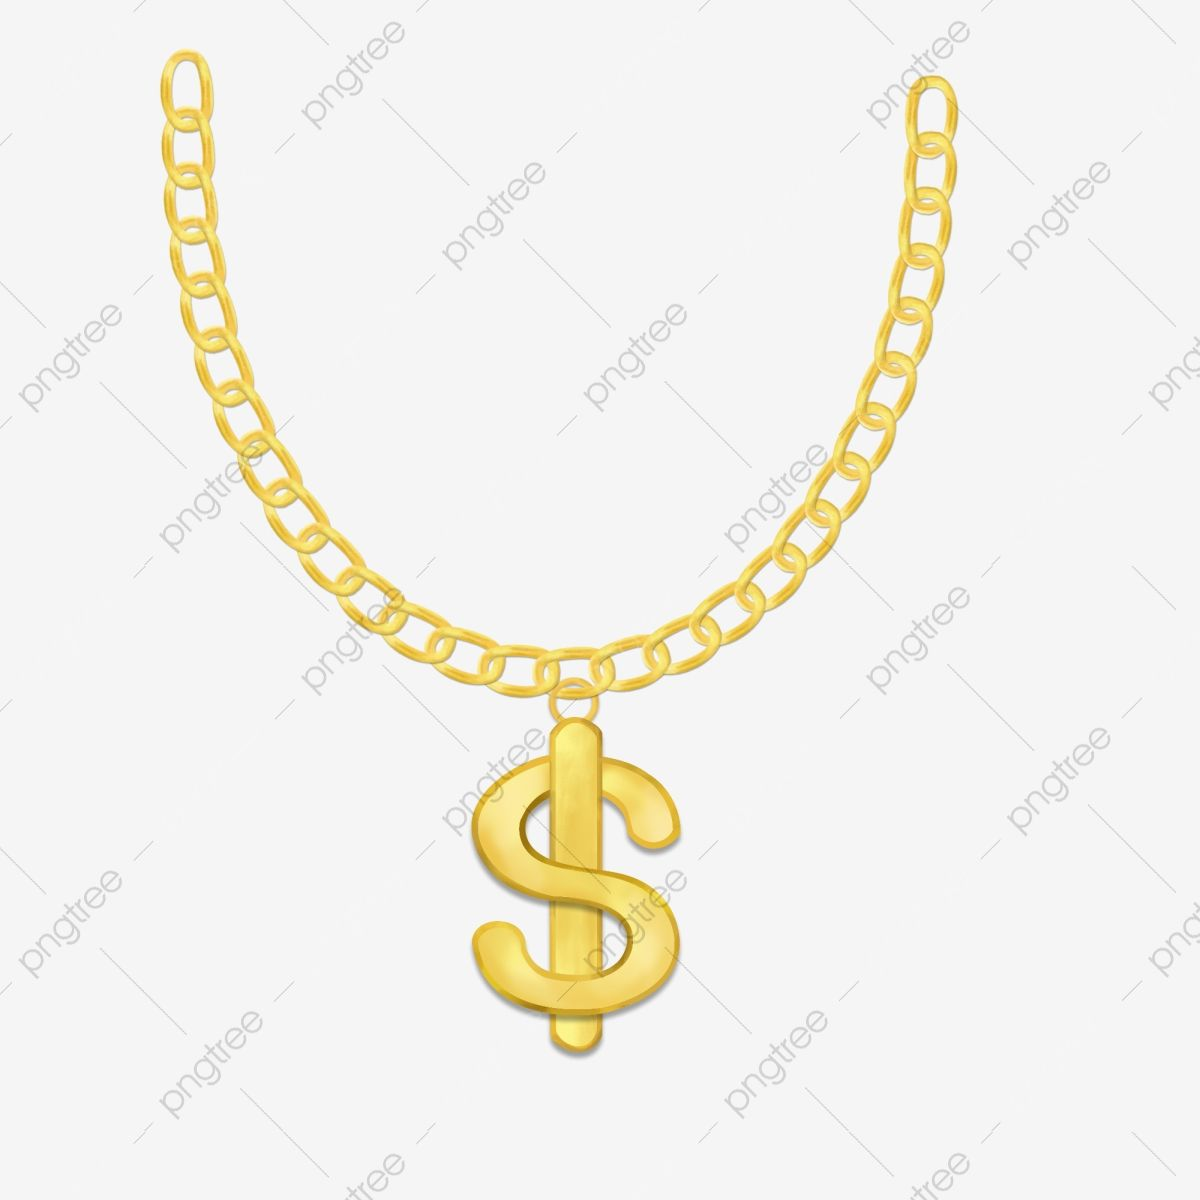 Dollar Sign Gold Chain Gold Clipart Us Dollar Shiny Png Transparent Clipart Image And Psd File For Free Download Moedas De Ouro Correntes Png